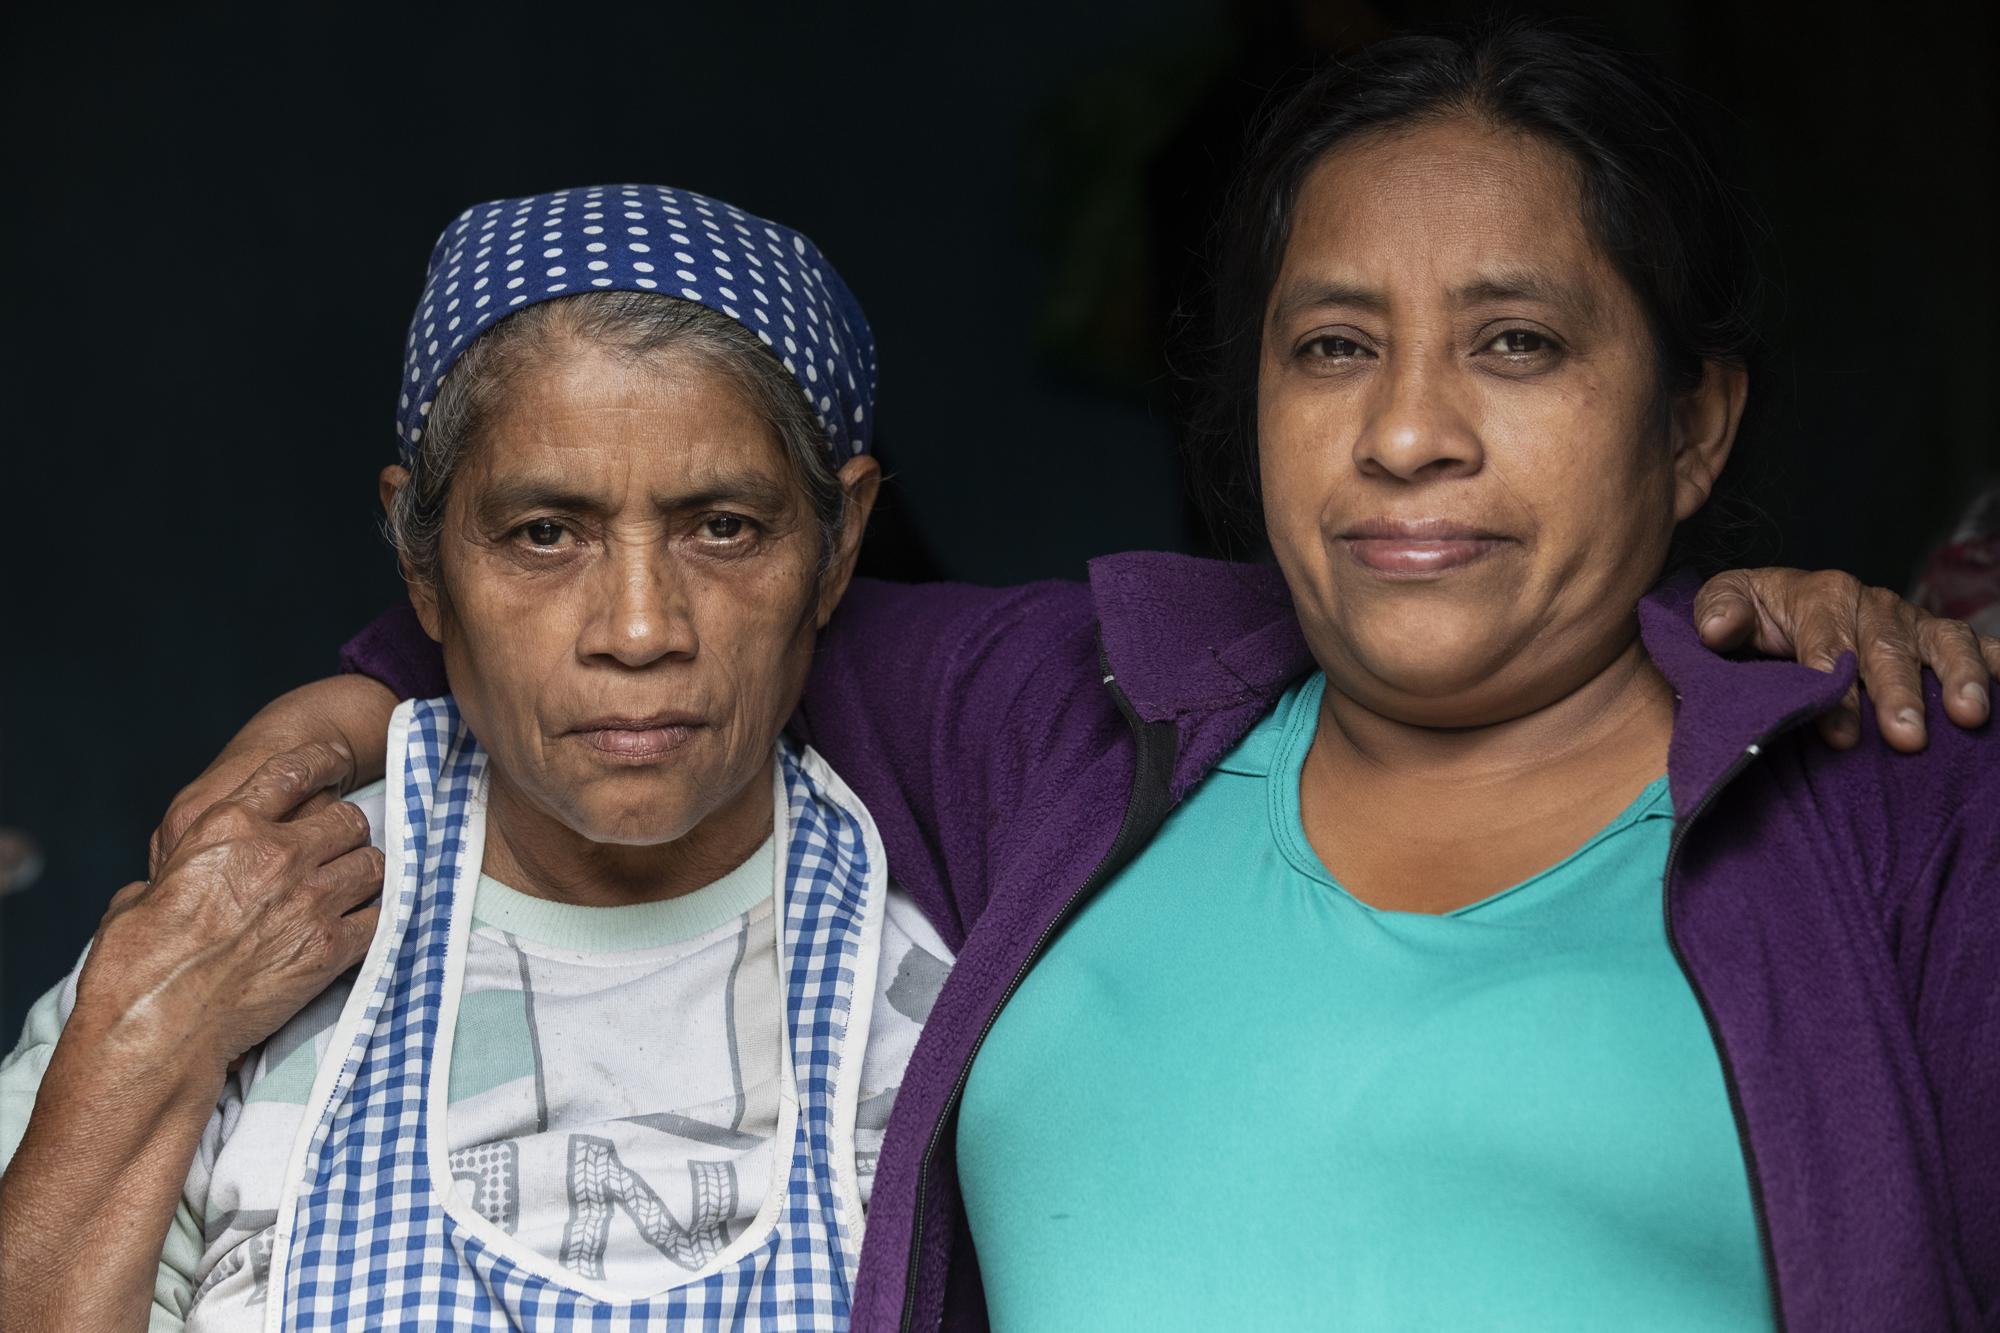 Alvina Jeronimo Perez, right, poses for a portrait with her mother Felipa de Jesus Perez at he mother's home in Tizamarte, Wednesday, Dec. 9, 2020. Felipa, 65, explained that their land has been passed down through the family since her grandparents, tenant farmers who had cultivated the land and eventually were given small parcels to live on. (AP Photo/Moises Castillo)